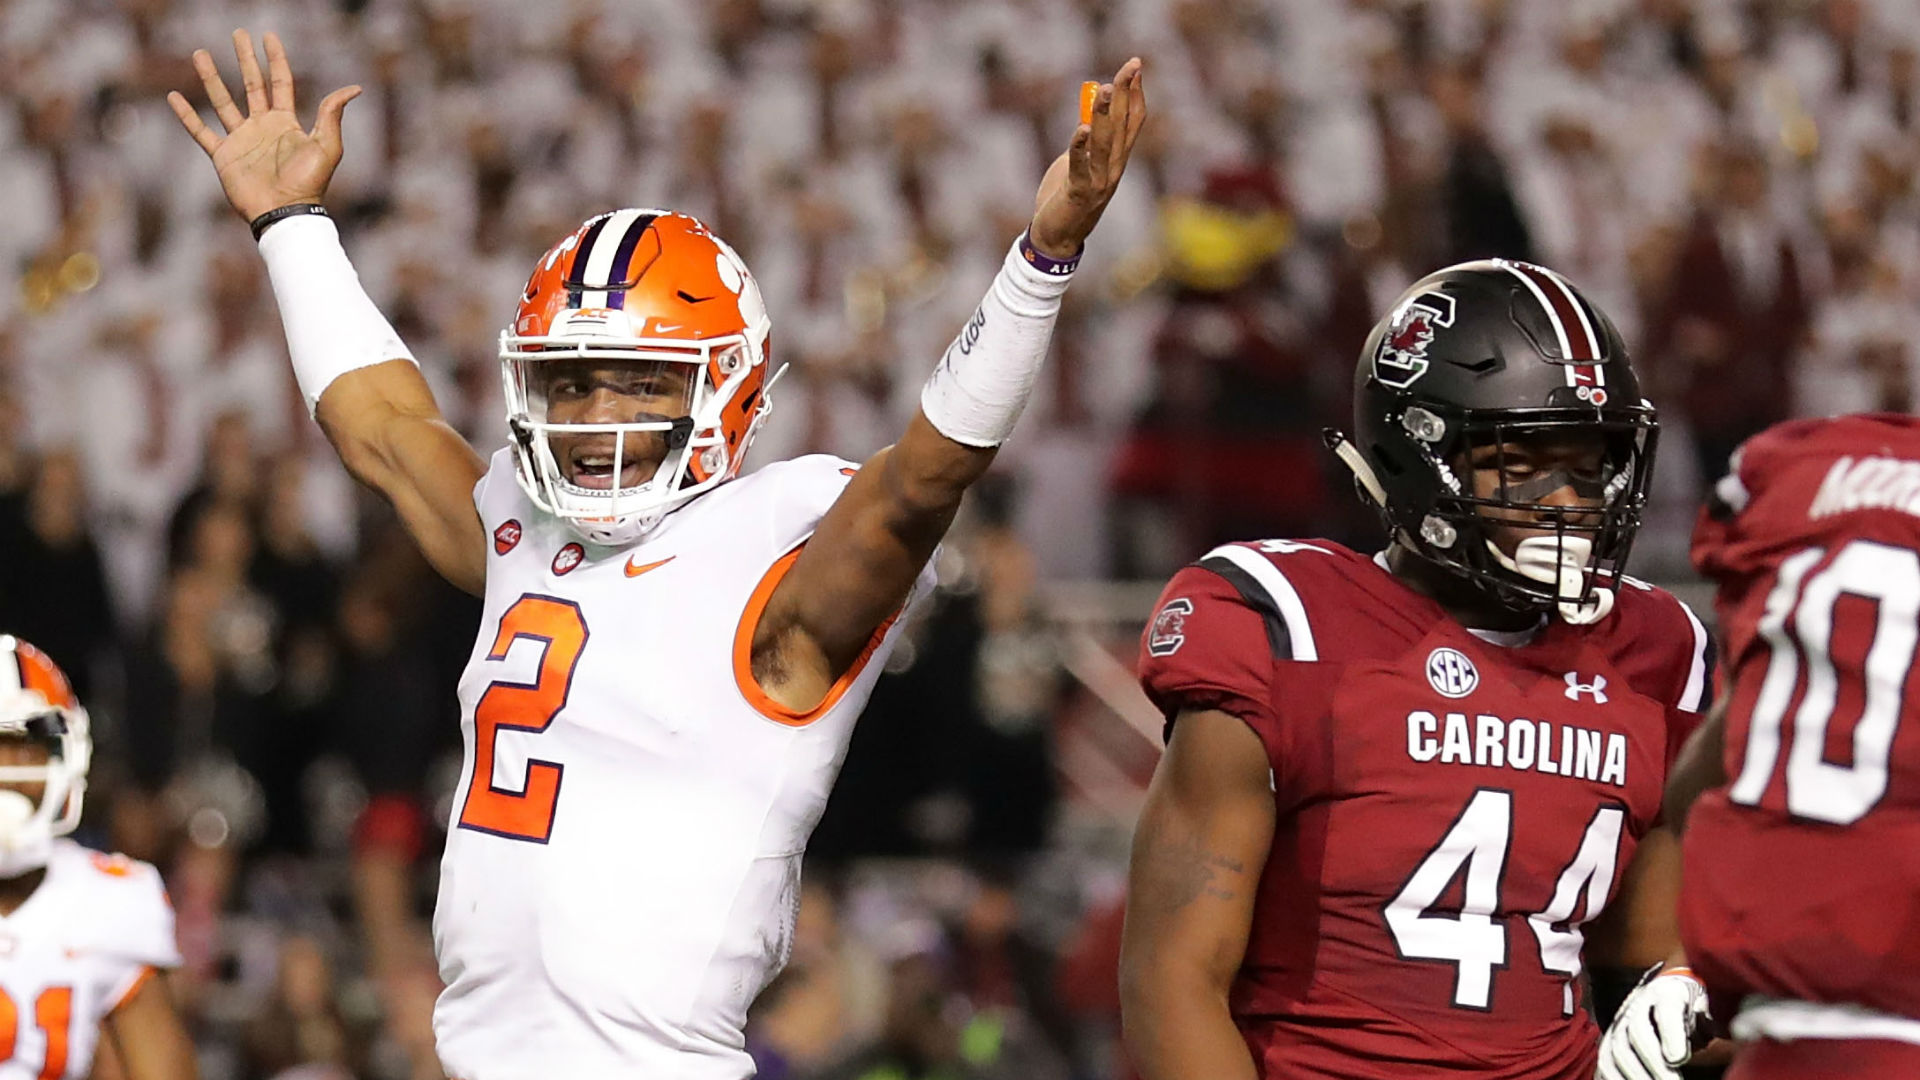 Clemson trolls rival South Carolina with 'Sandstorm' after ...